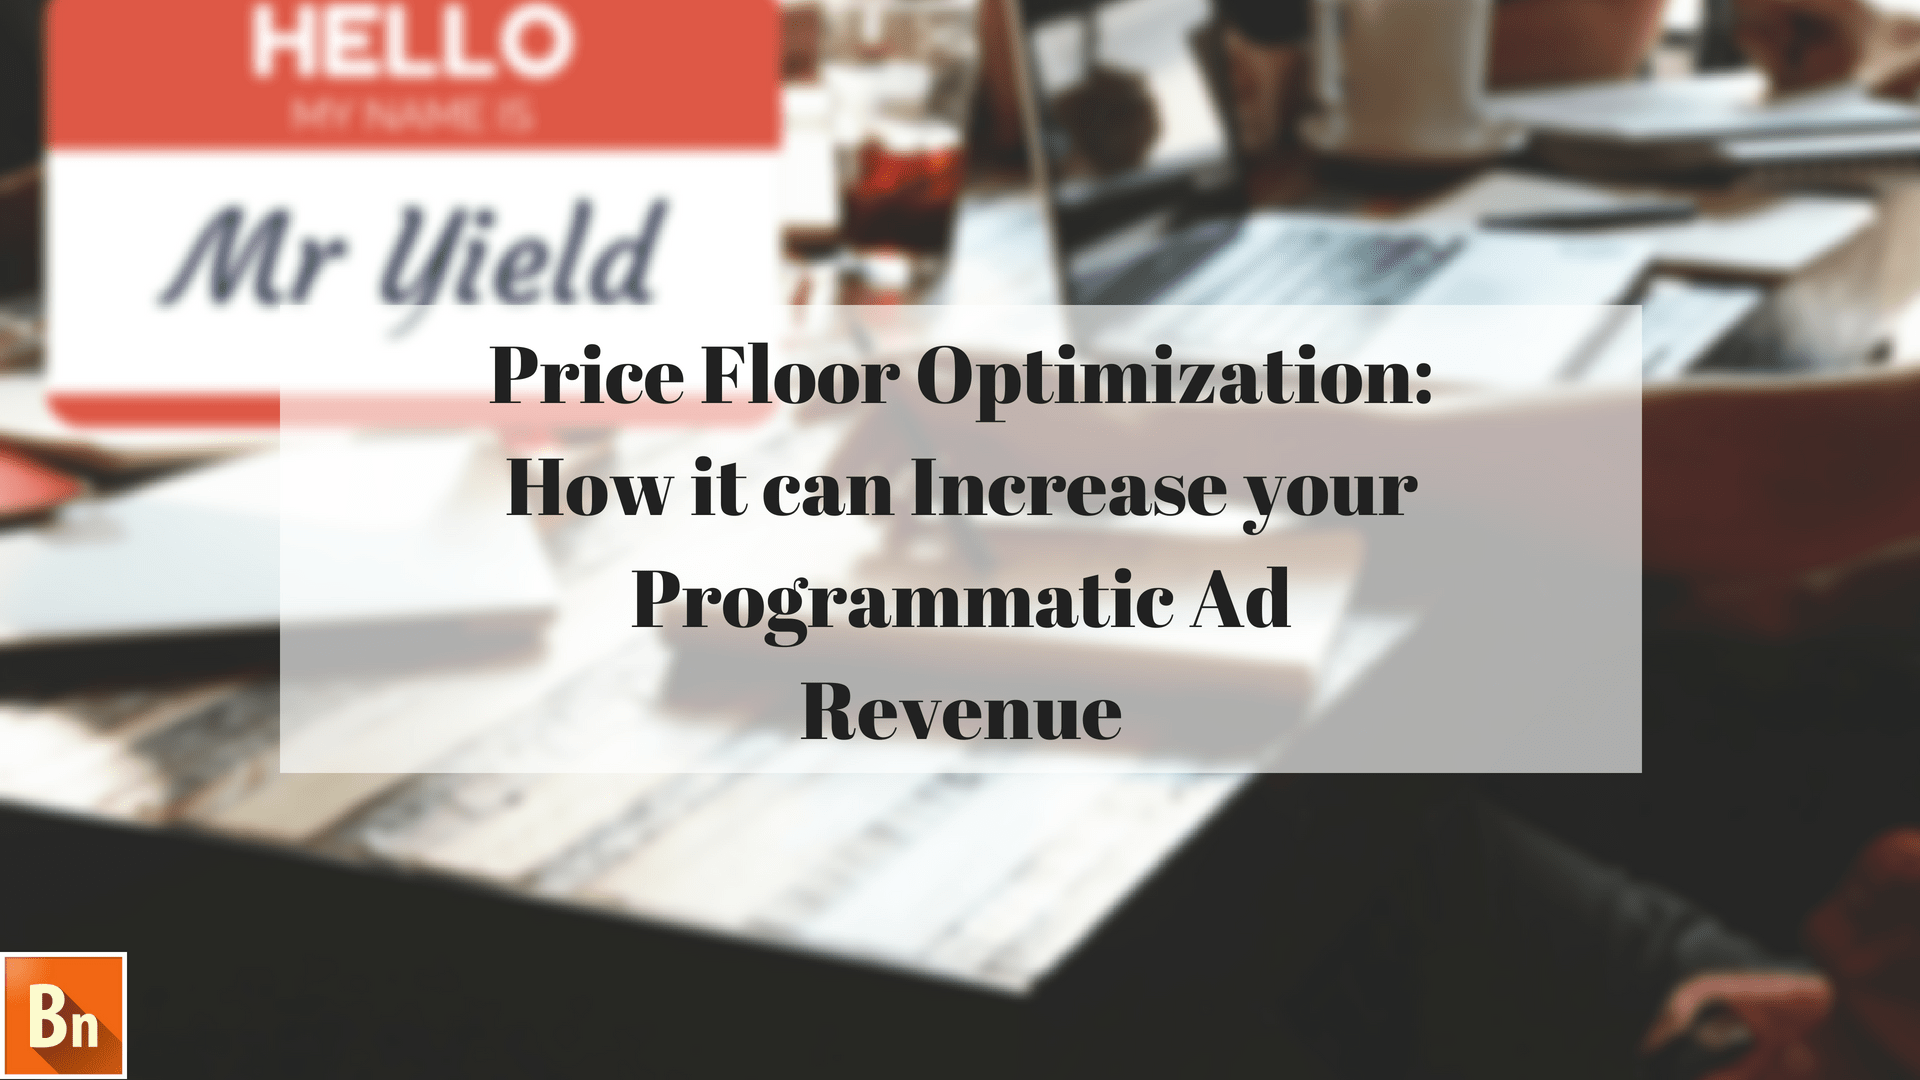 Price Floor Optimization: How it can Increase your Programmatic Ad Revenue